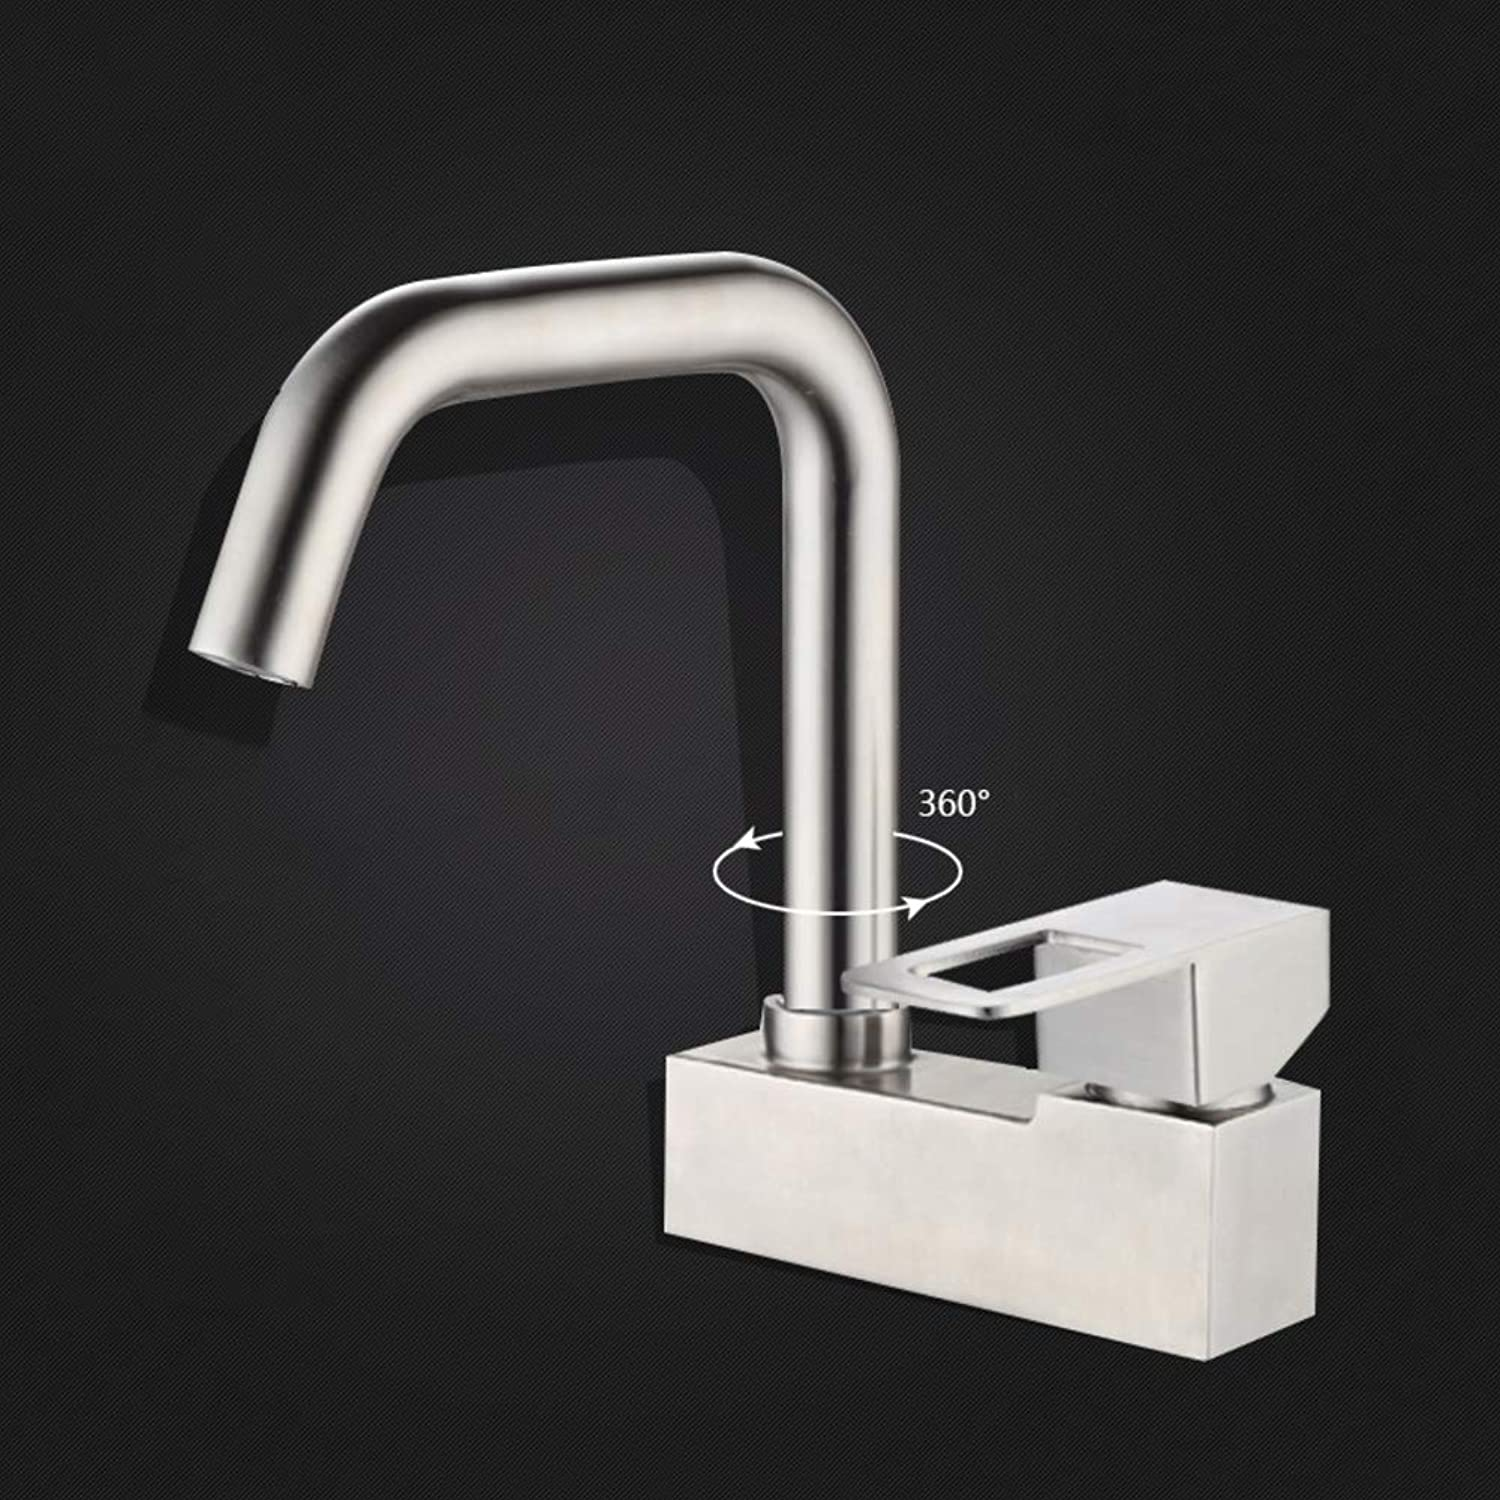 redating Sink Faucet, Single Kitchen Faucet 304 Full Copper Double Hole Basin Mixer Universal Hot and Cold Water tap Lavatory Faucet-Q